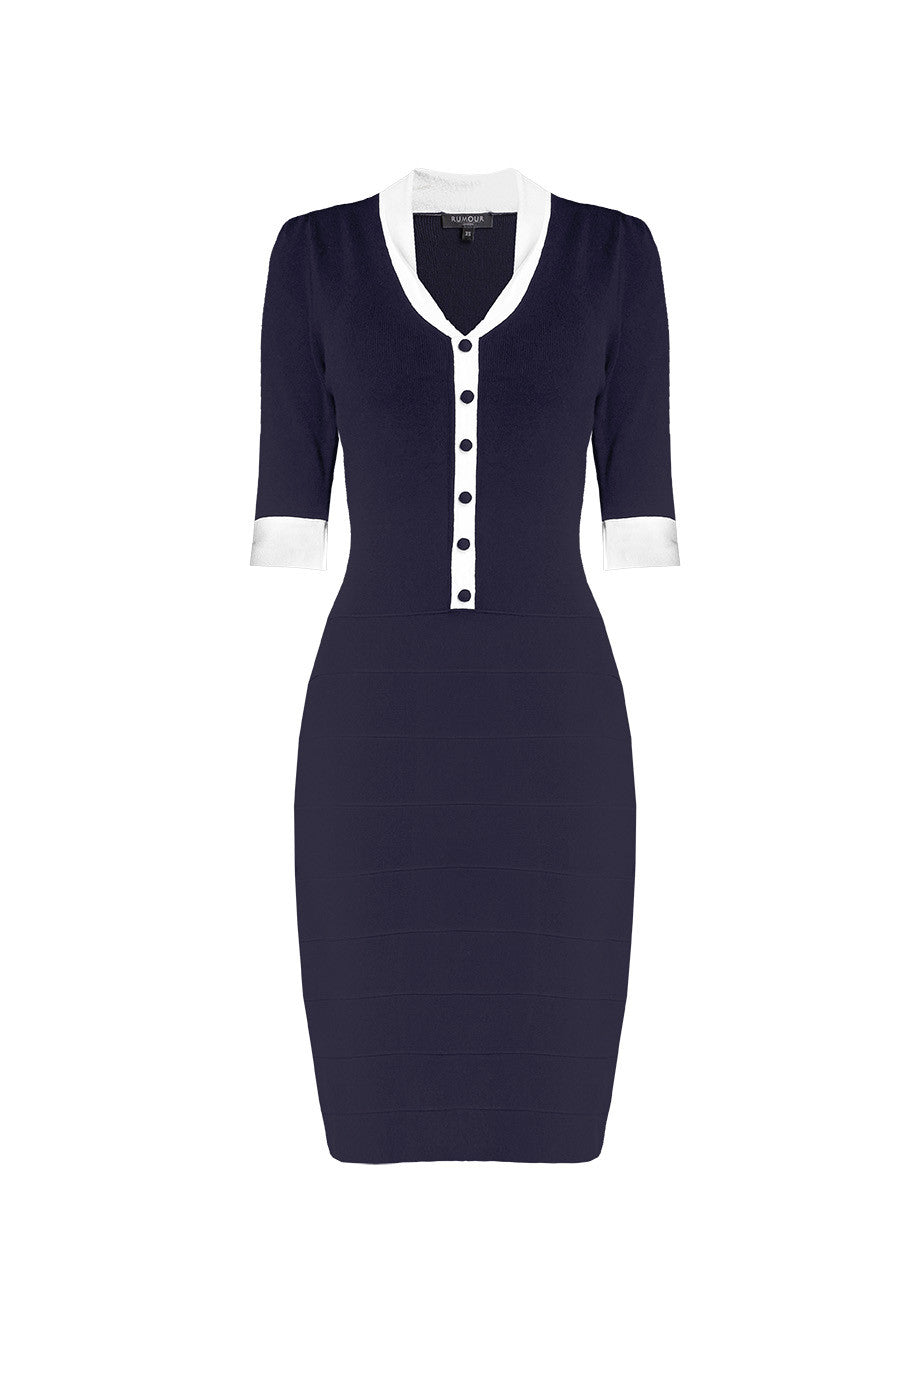 Navy knitted bodycon dress